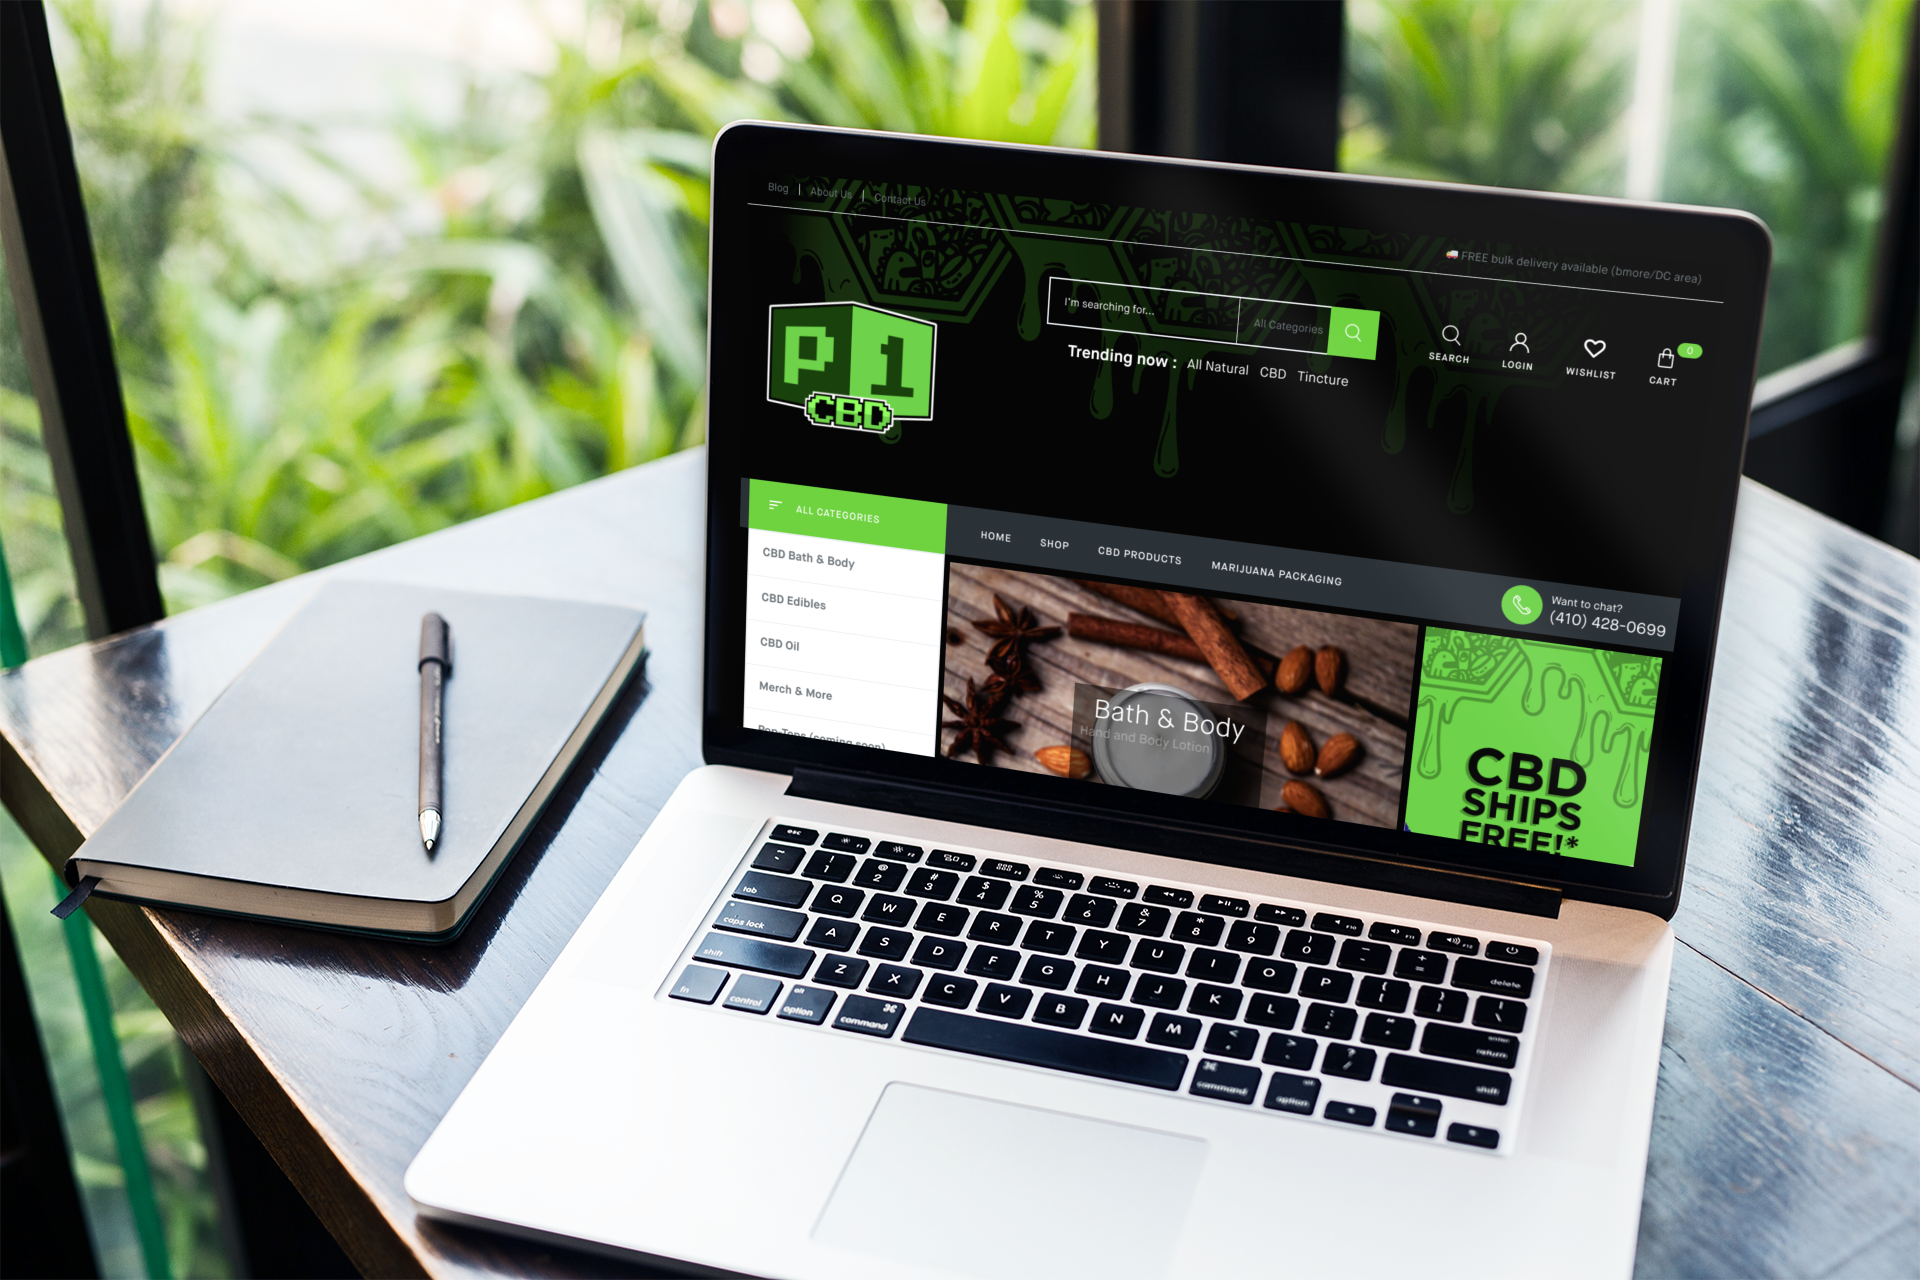 Website design for P1CBD.com